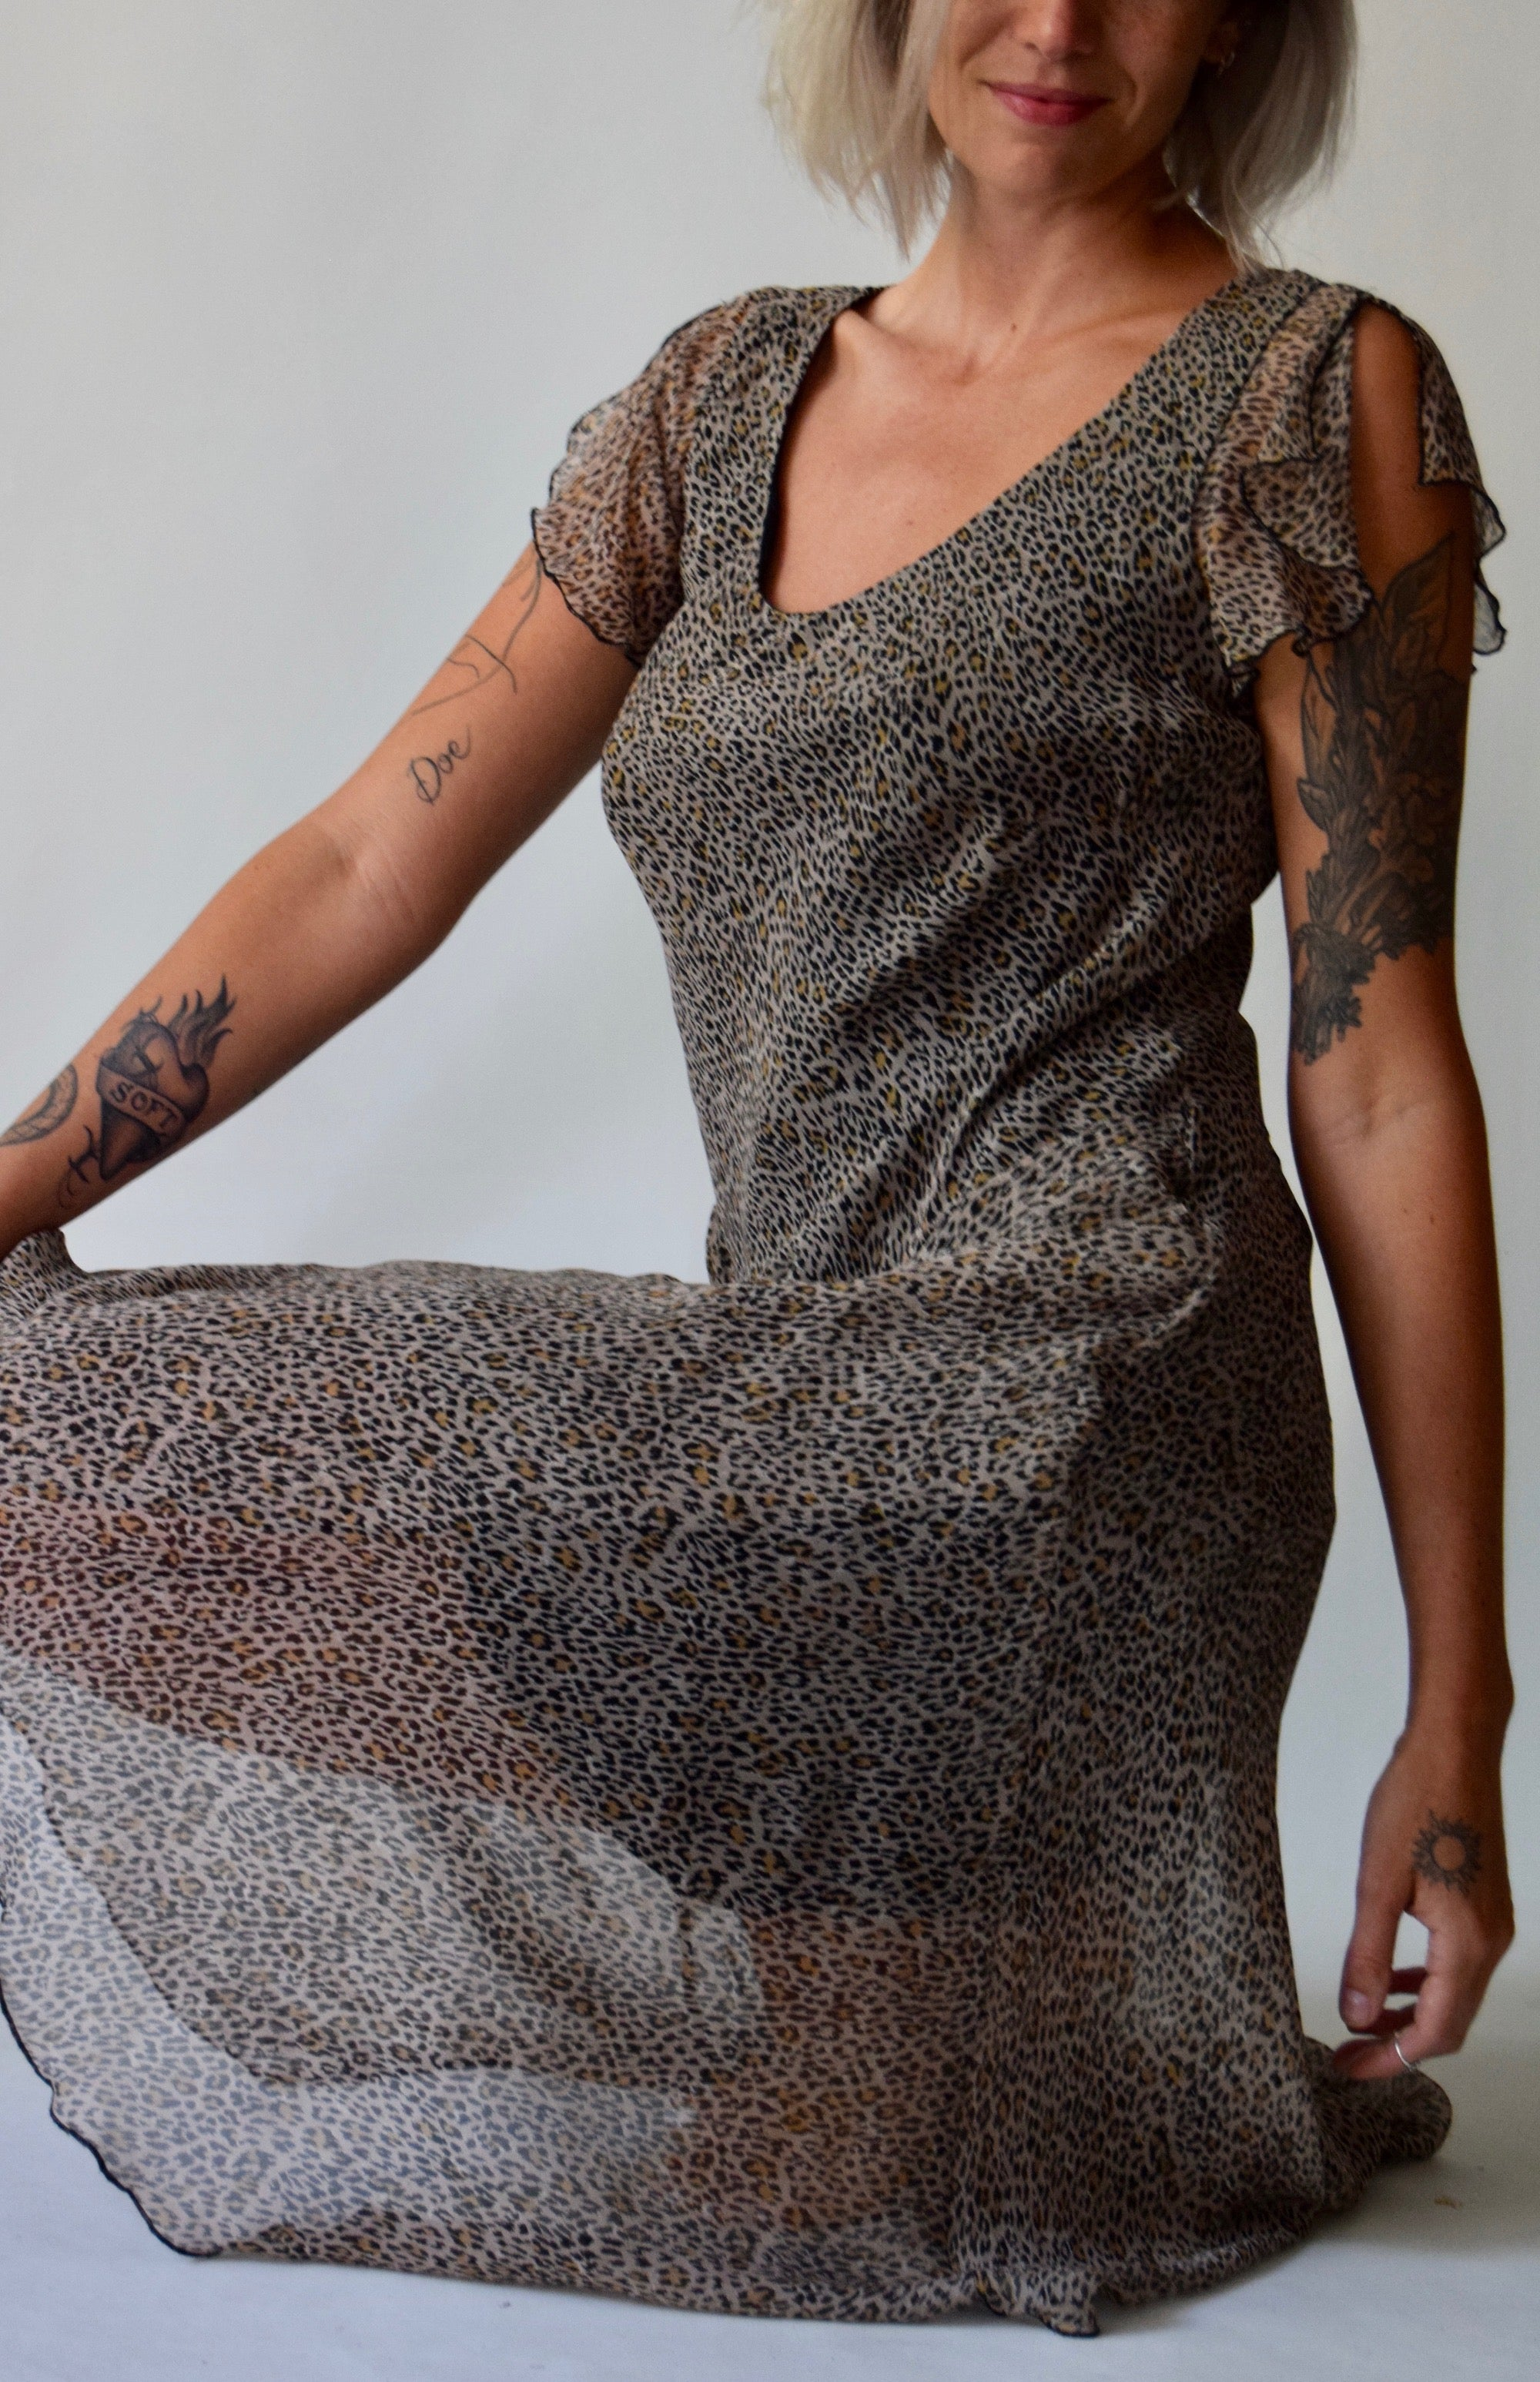 Part One : Aughts Leopard Print Dress FREE SHIPPING